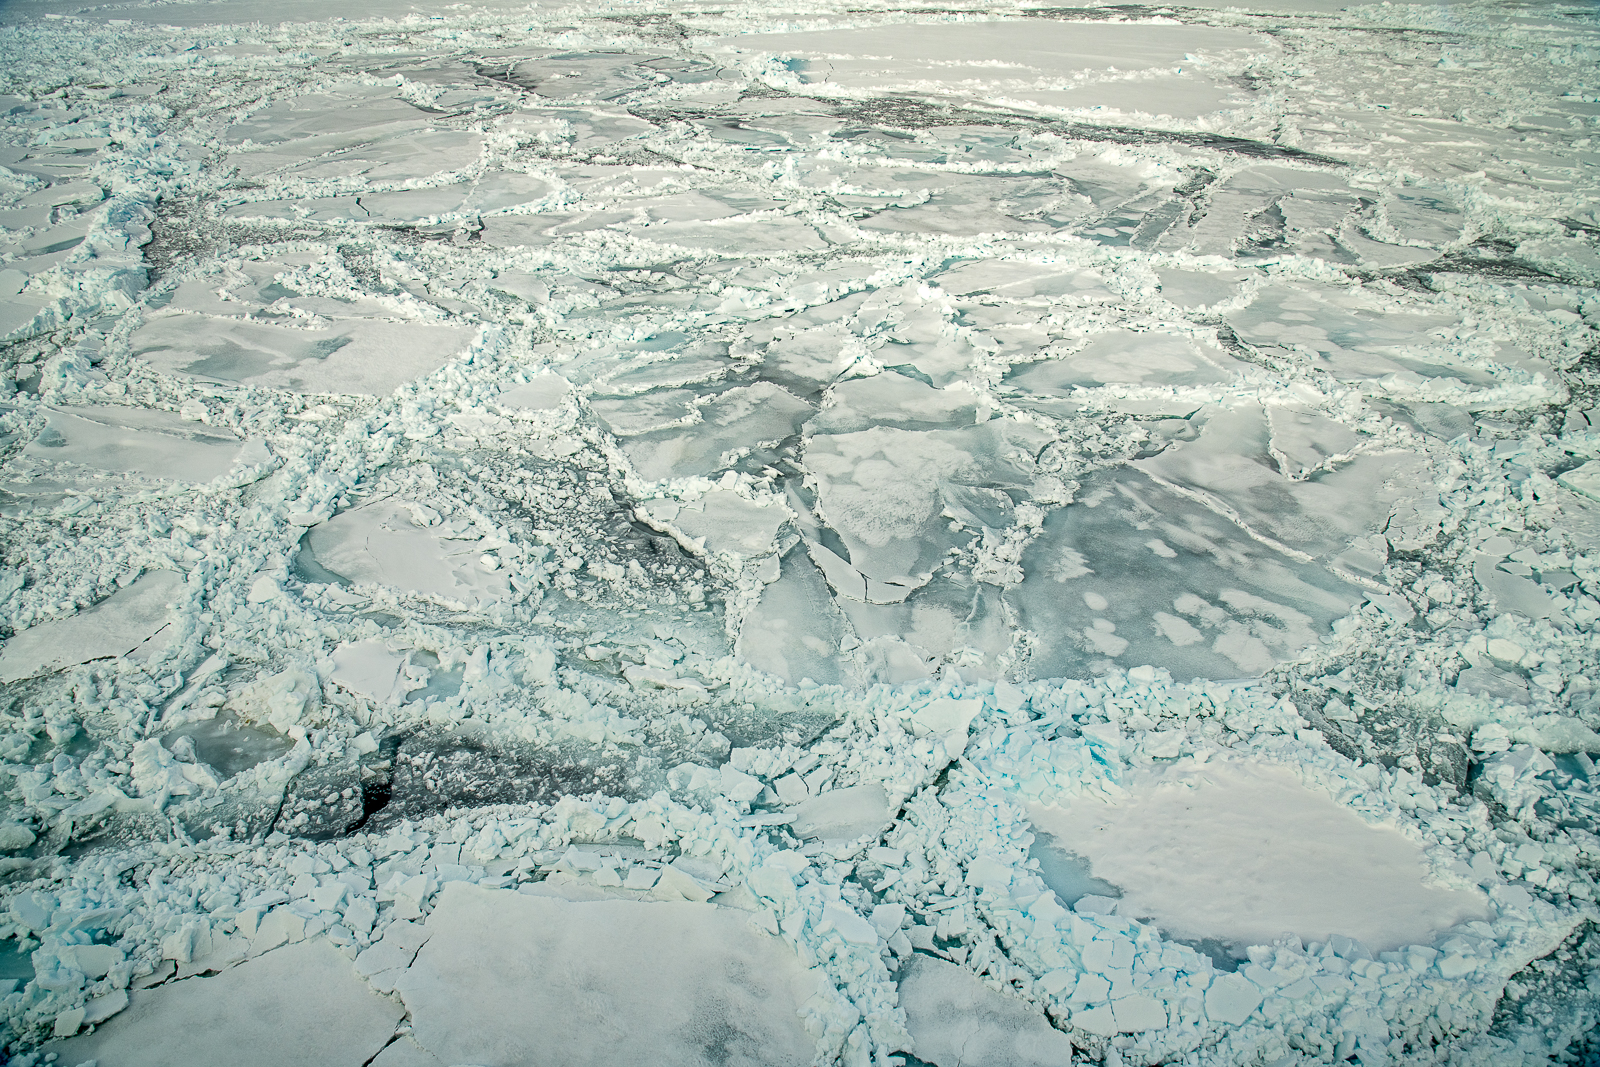 Fractured Sea Ice with Rift Lines, Weddell Sea